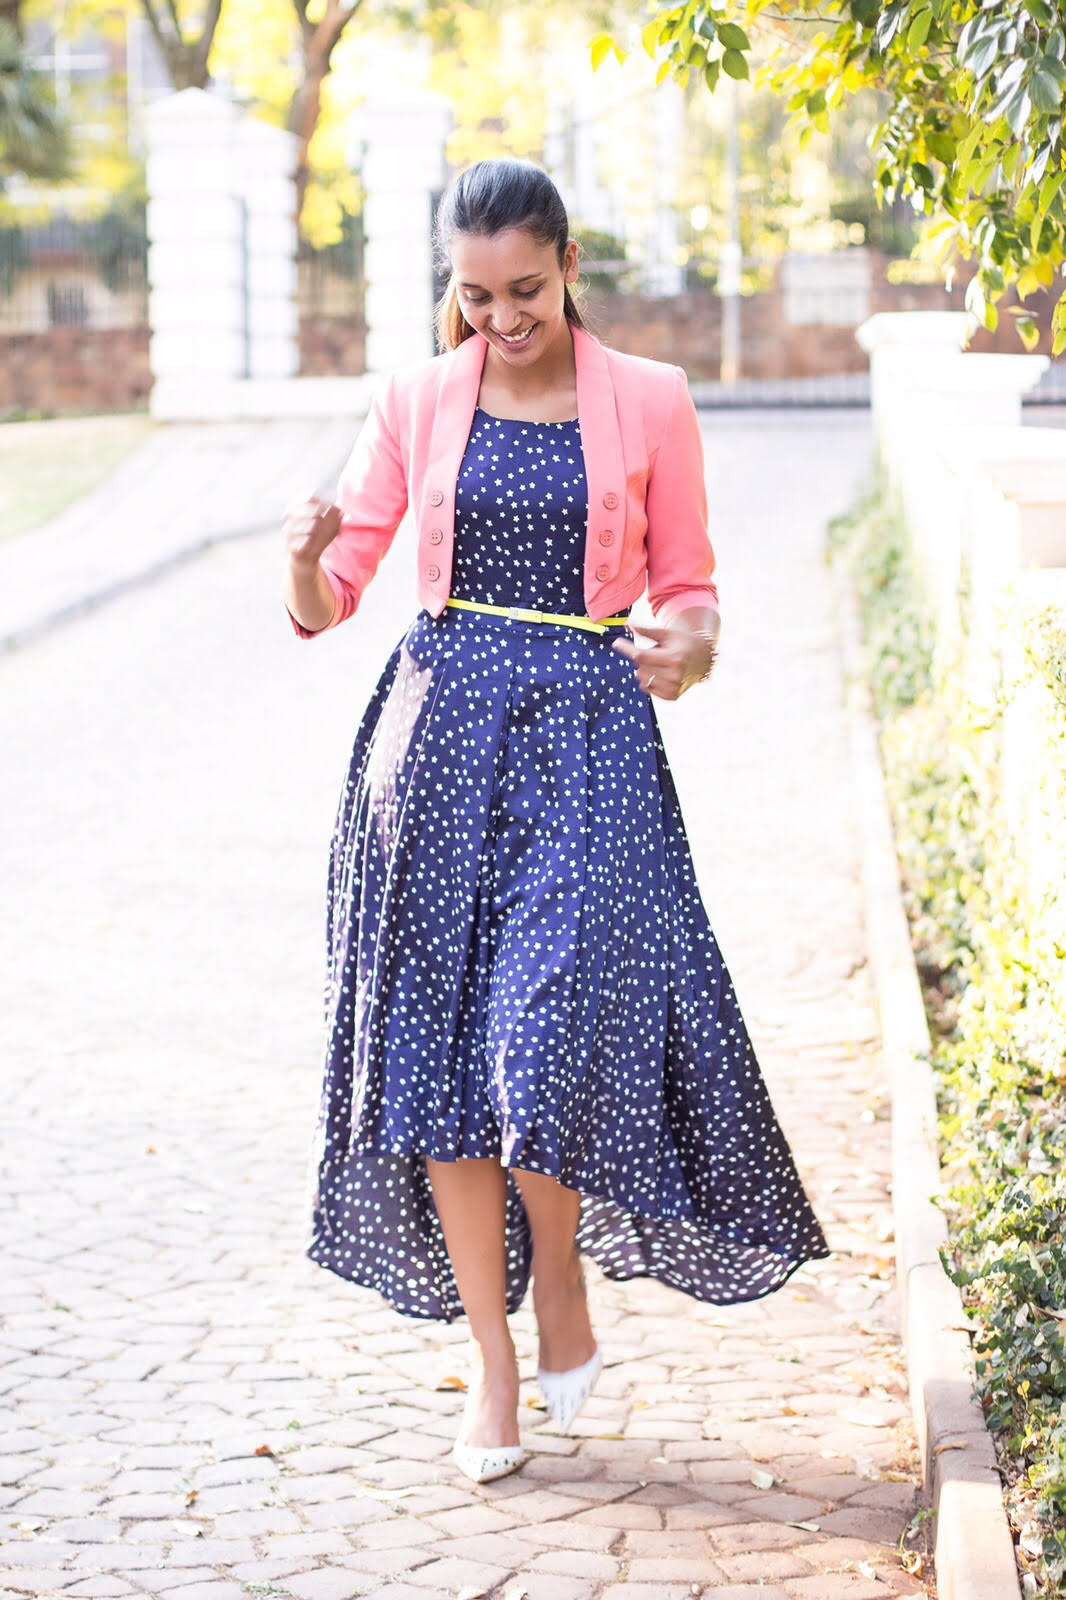 20 Tips to Dress Modestly and Stylishly this Summer from 12 Modest ...